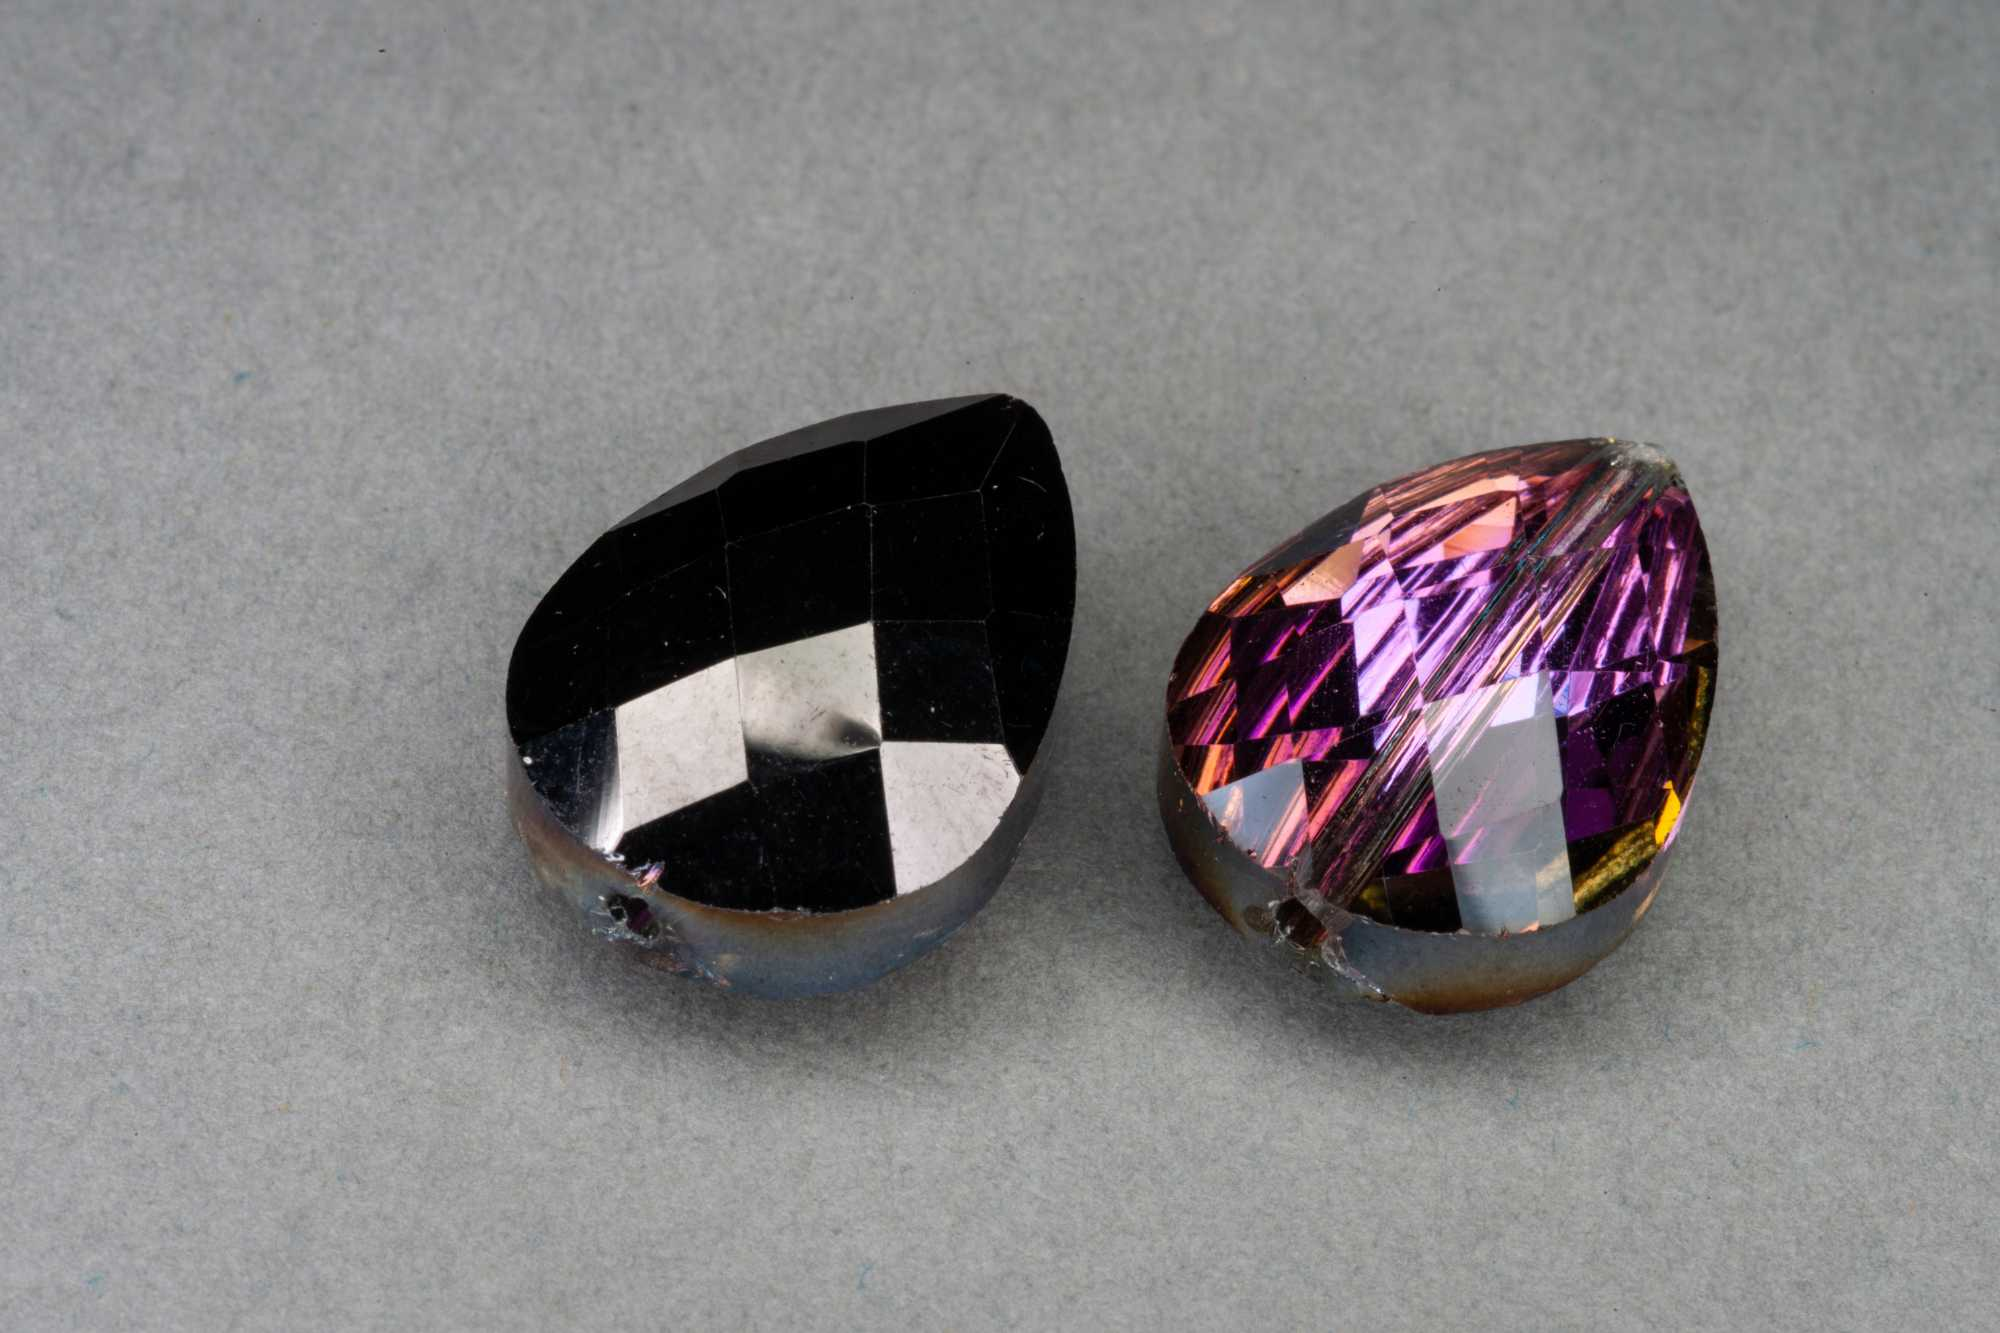 Metallic Black/Magenta Pear Shape Faceted Glass Bead 18x13x8mm